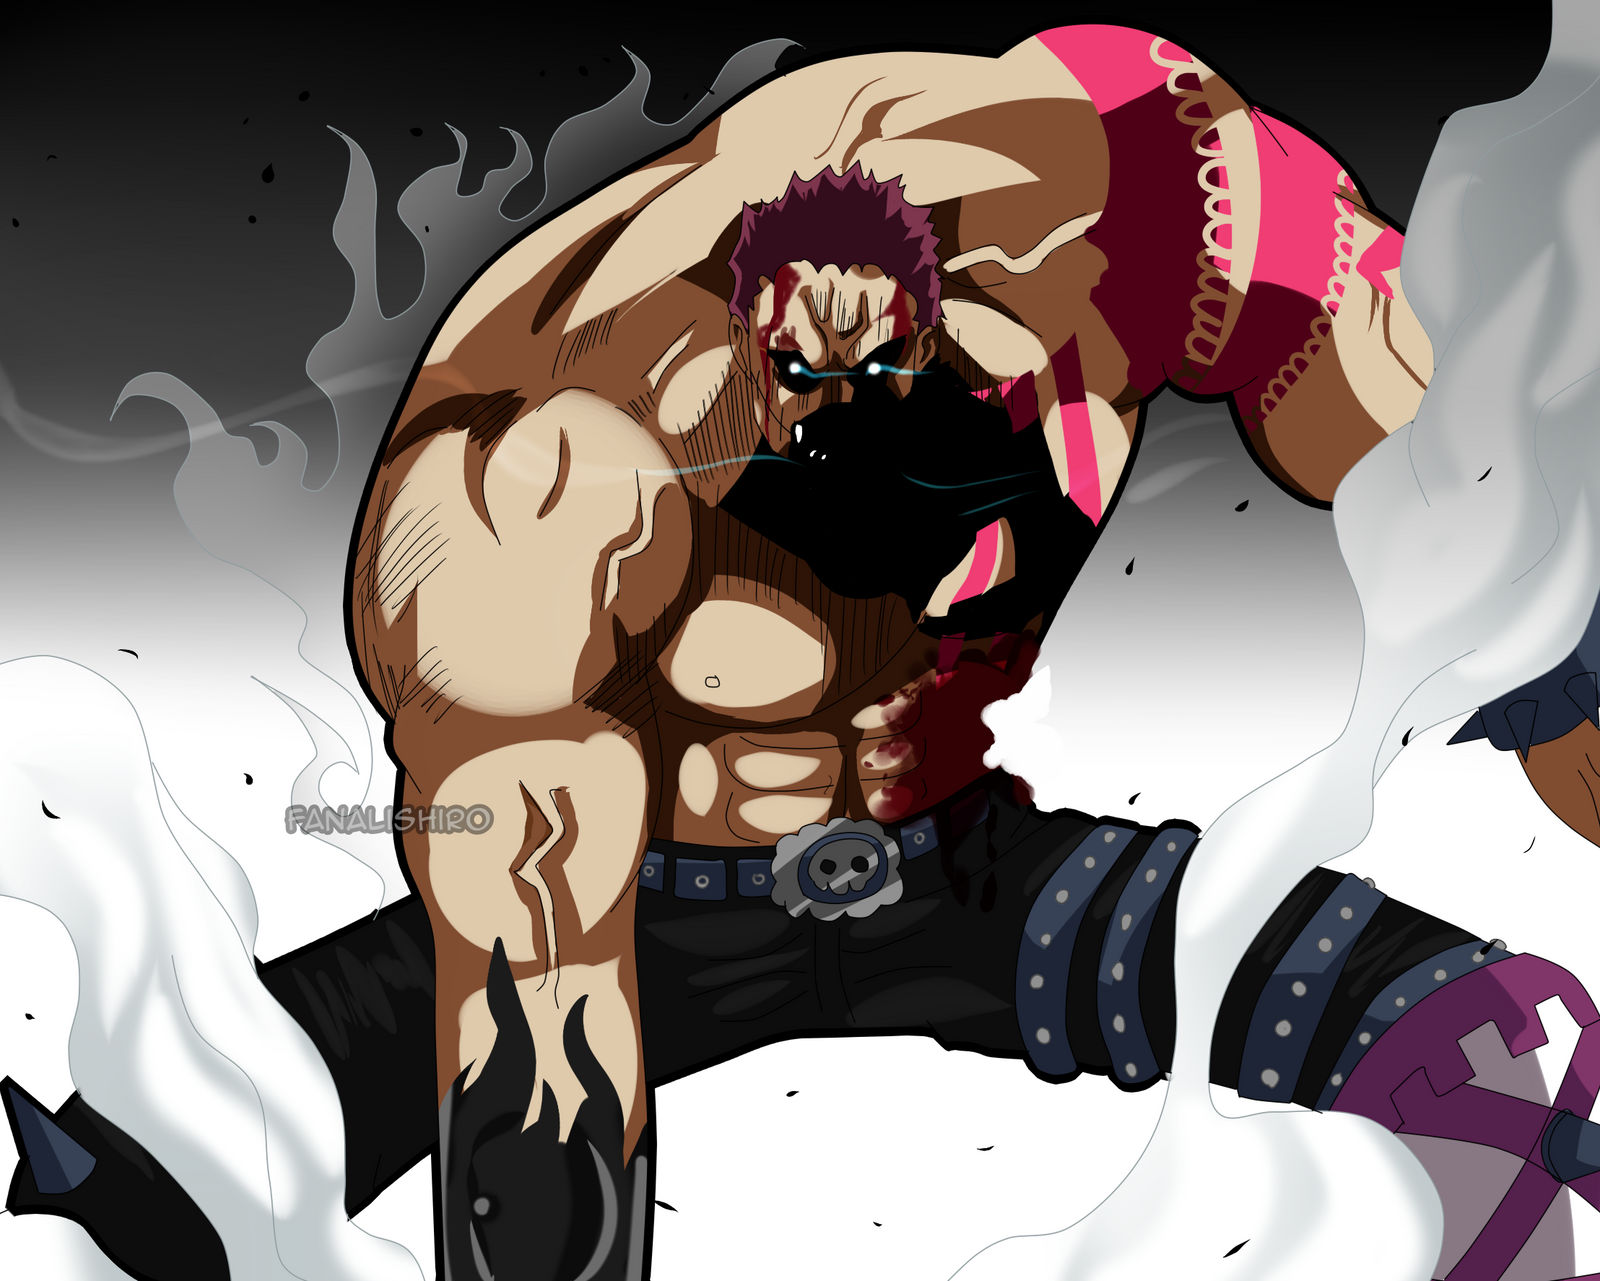 Charlotte Katakuri. (One Piece Ch. 895) by FanaliShiro on DeviantArt